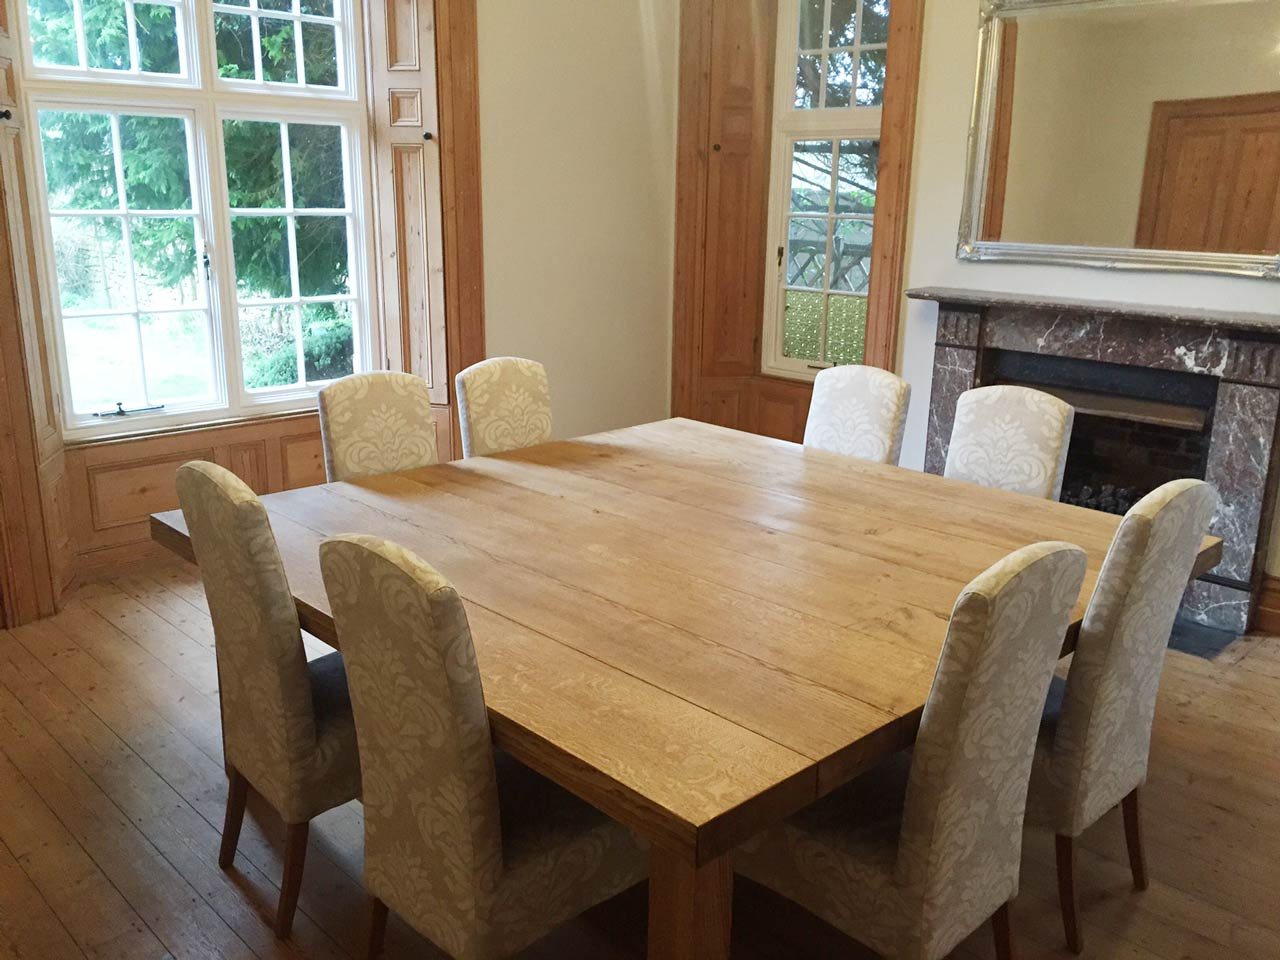 Rustic-Farmhouse-dining-table-project-297-pic2